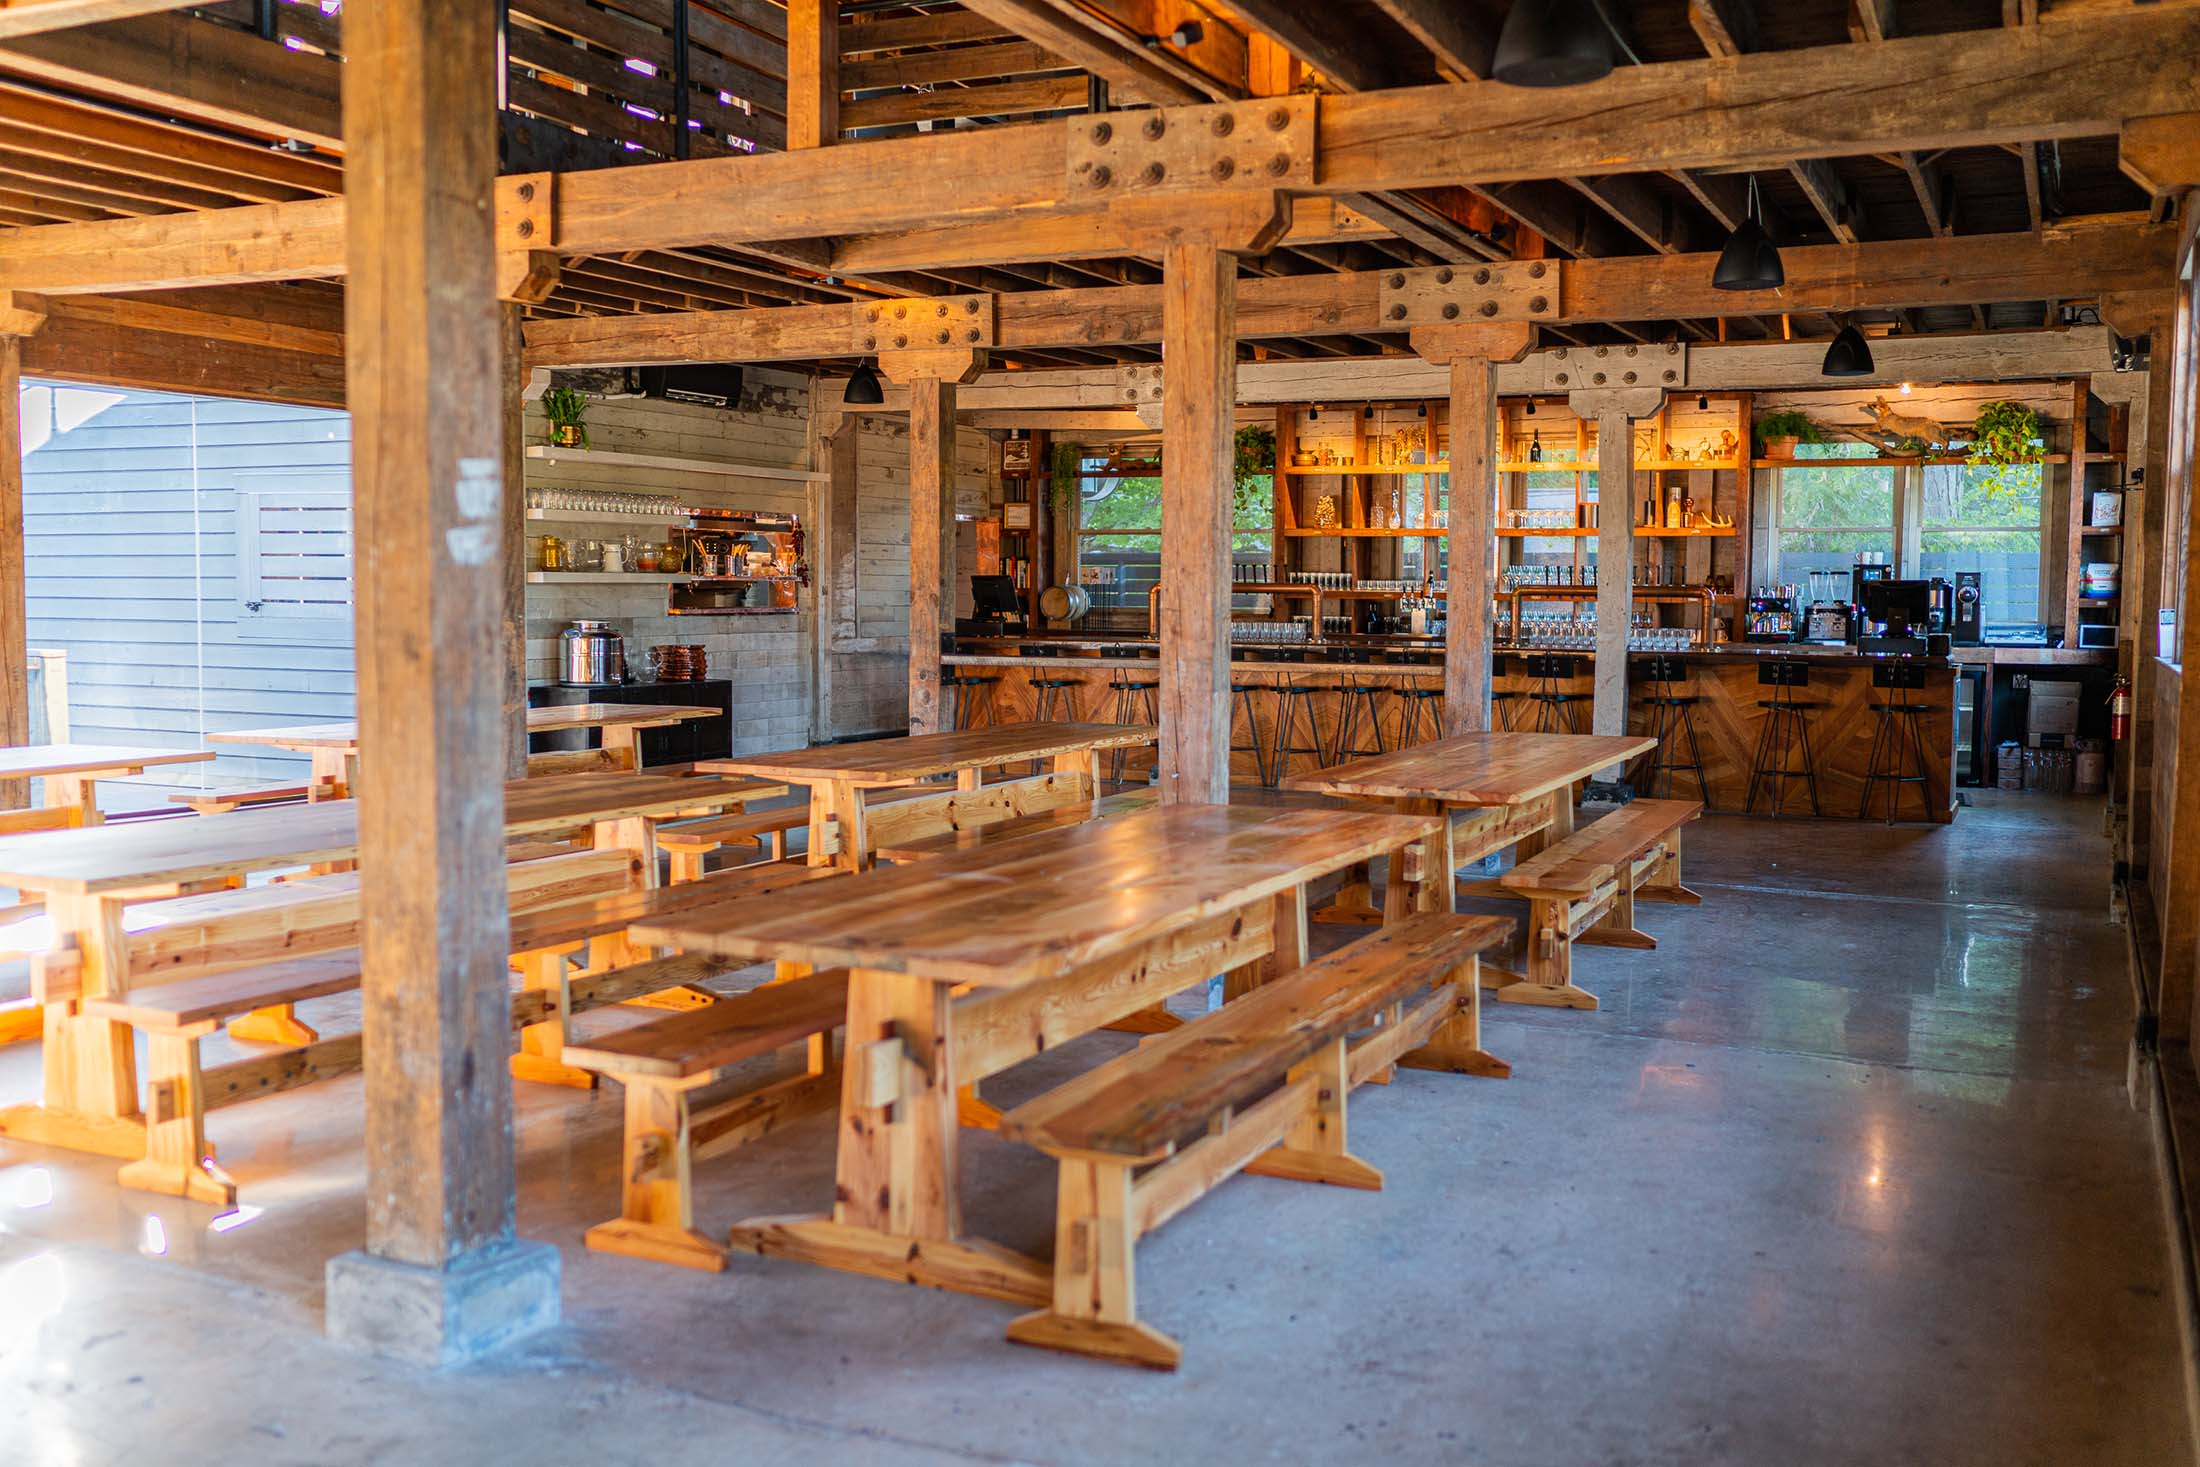 Burial Beer Co.'s monumental restoration project of a two-acre 1930s workers camp completes with this weekend's opening of the Forestry Camp Bar & Restaurant